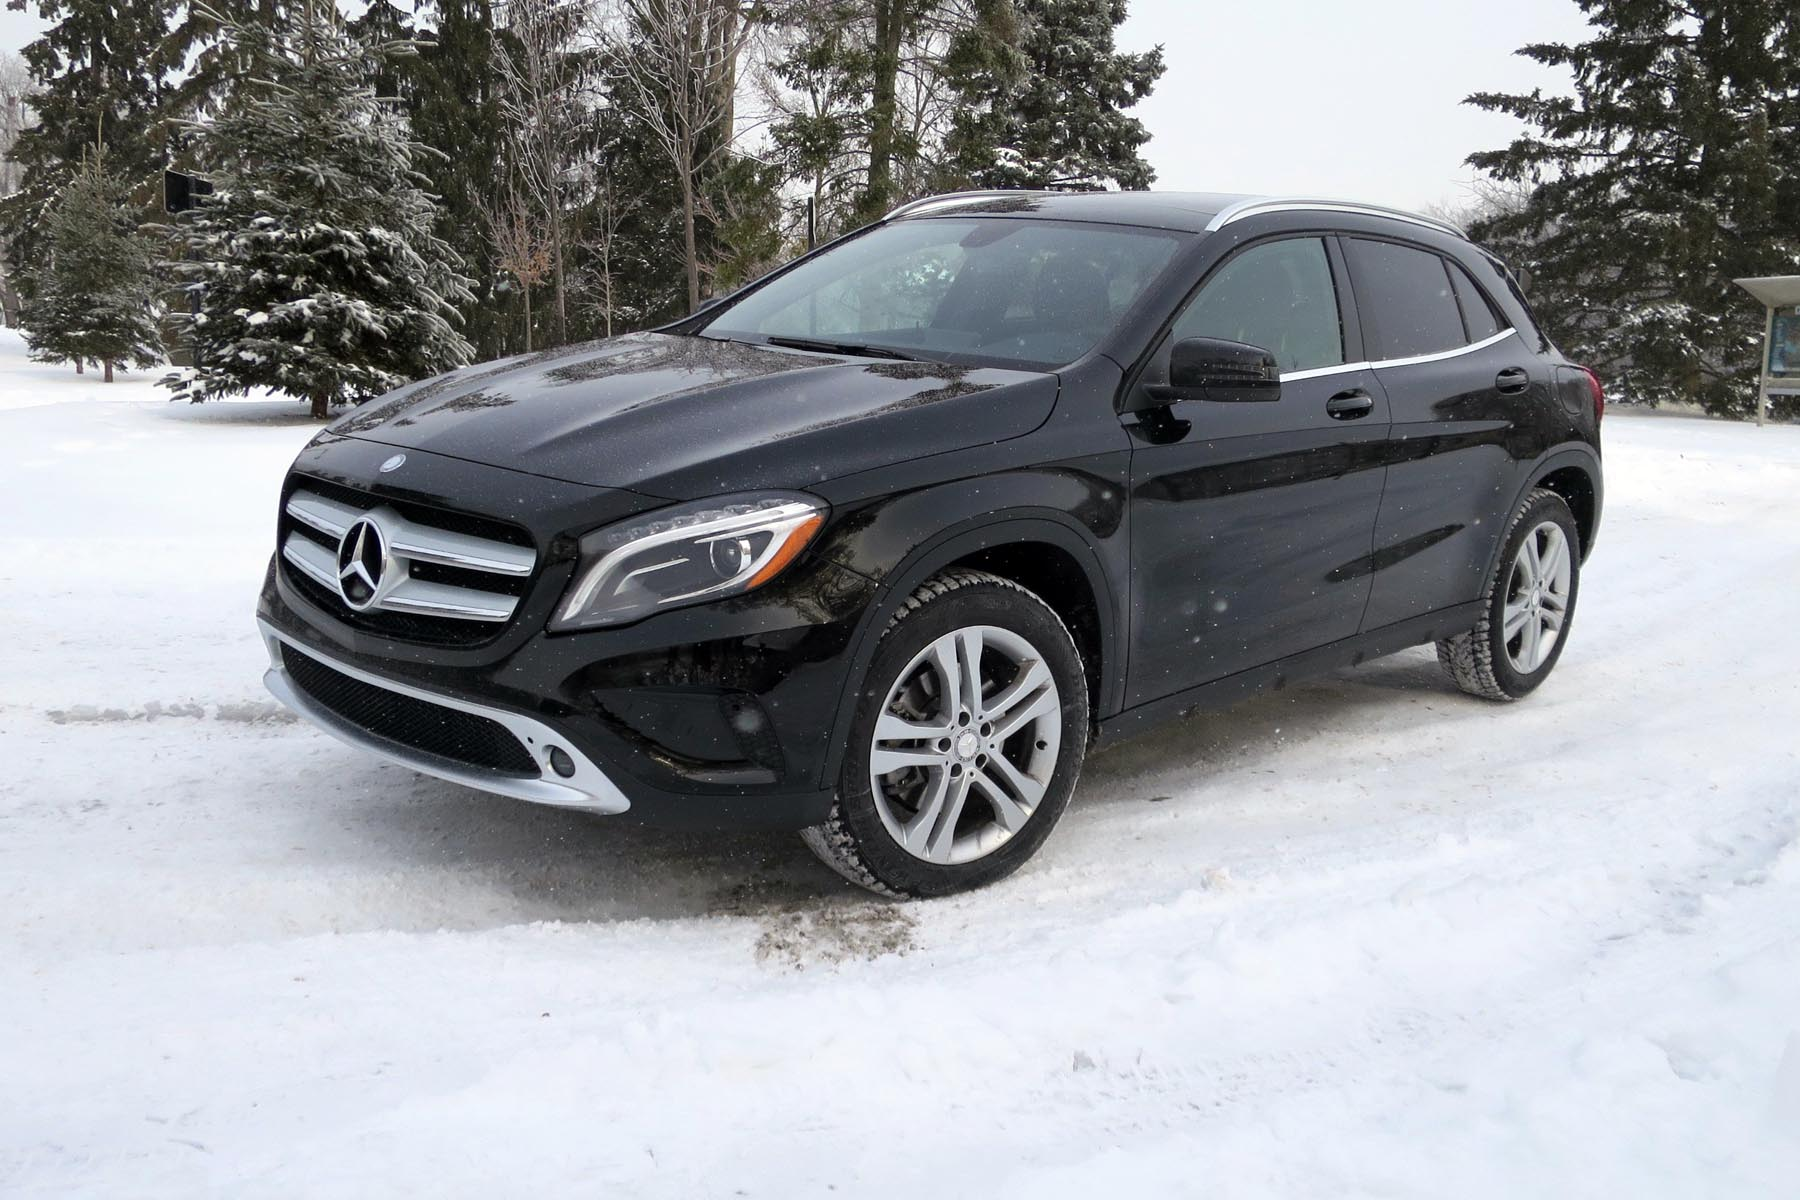 Benz 2016 gla 250 2017 2018 best cars reviews for Mercedes benz gla 2015 price